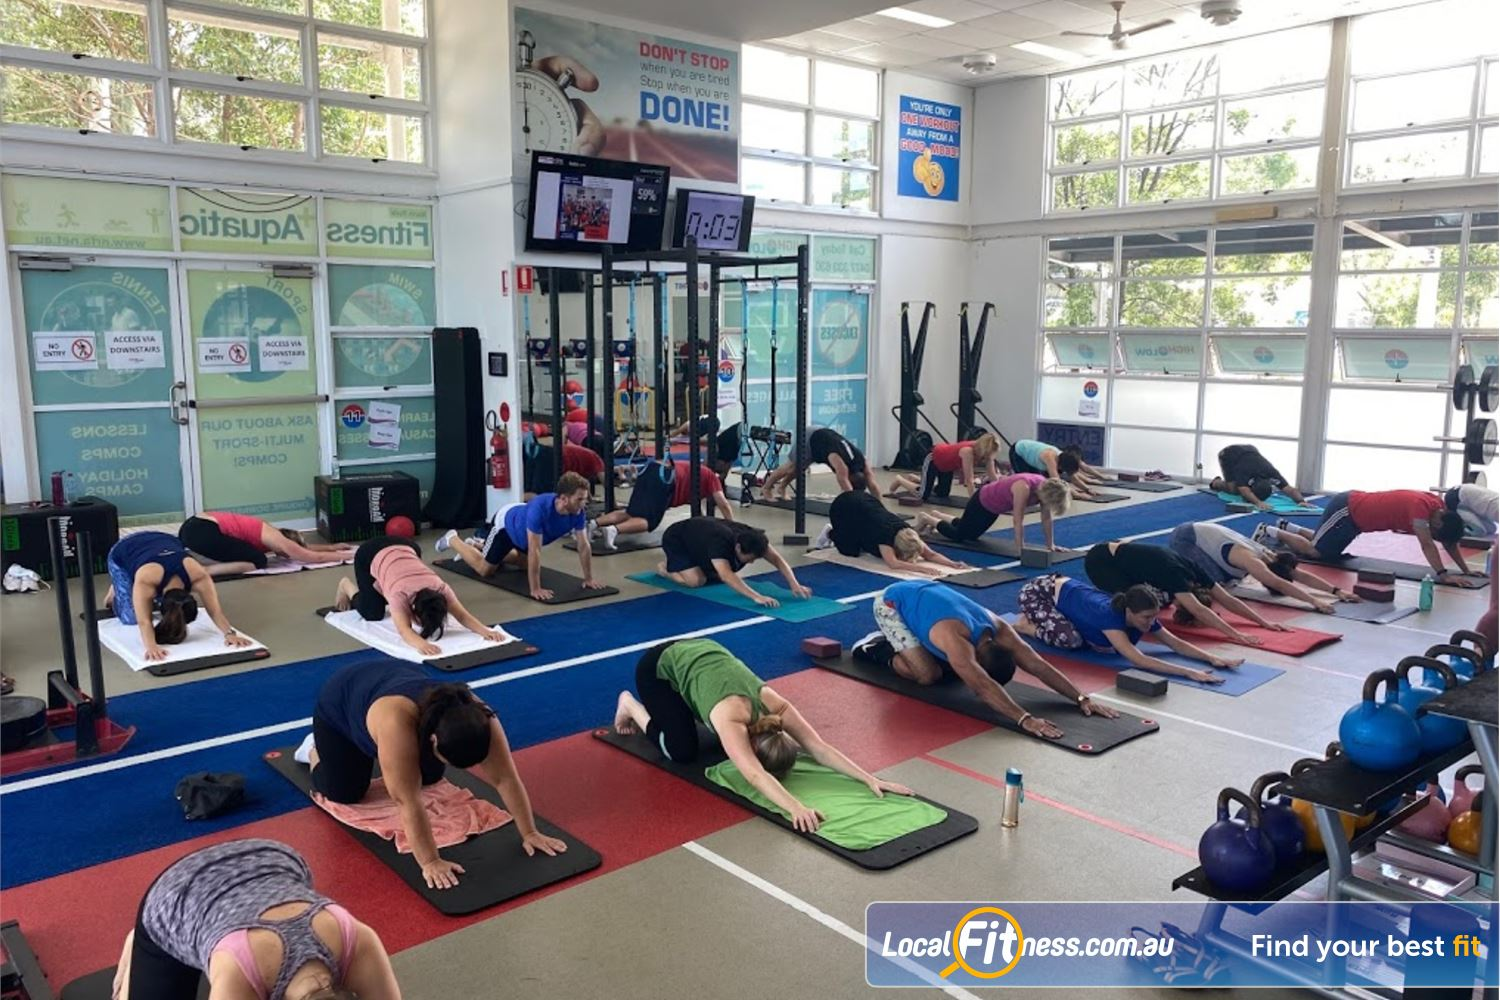 North Ryde Fitness & Aquatic North Ryde Our classes inc. North Ryde Yoga, Boxing, HIIT and more.